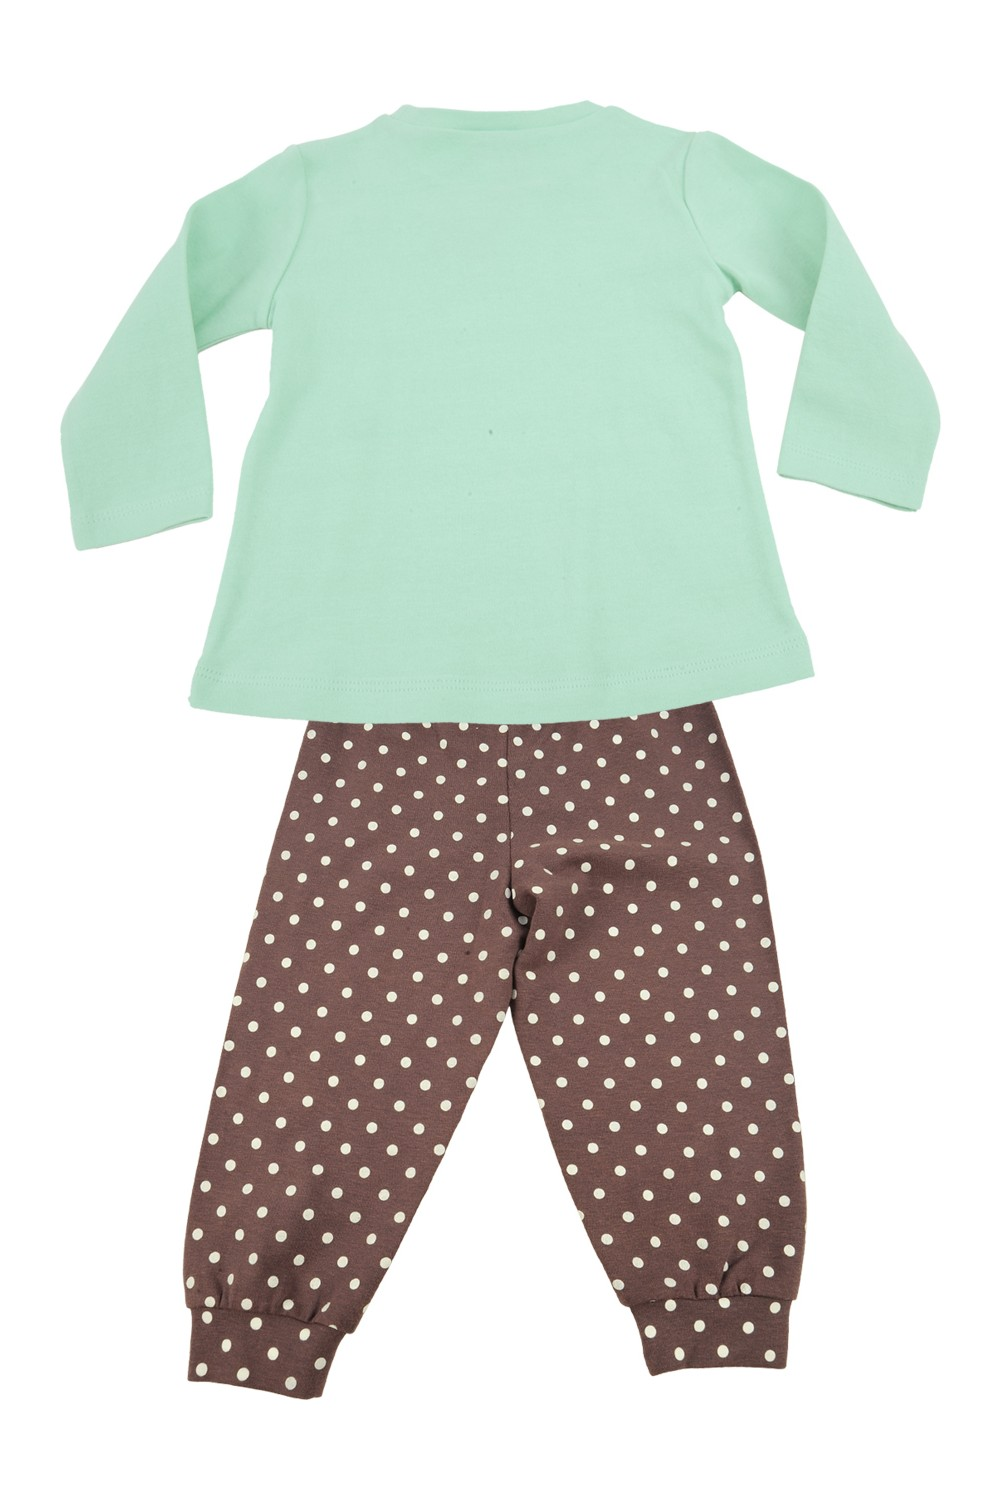 Zeyland Girl's Pajamas